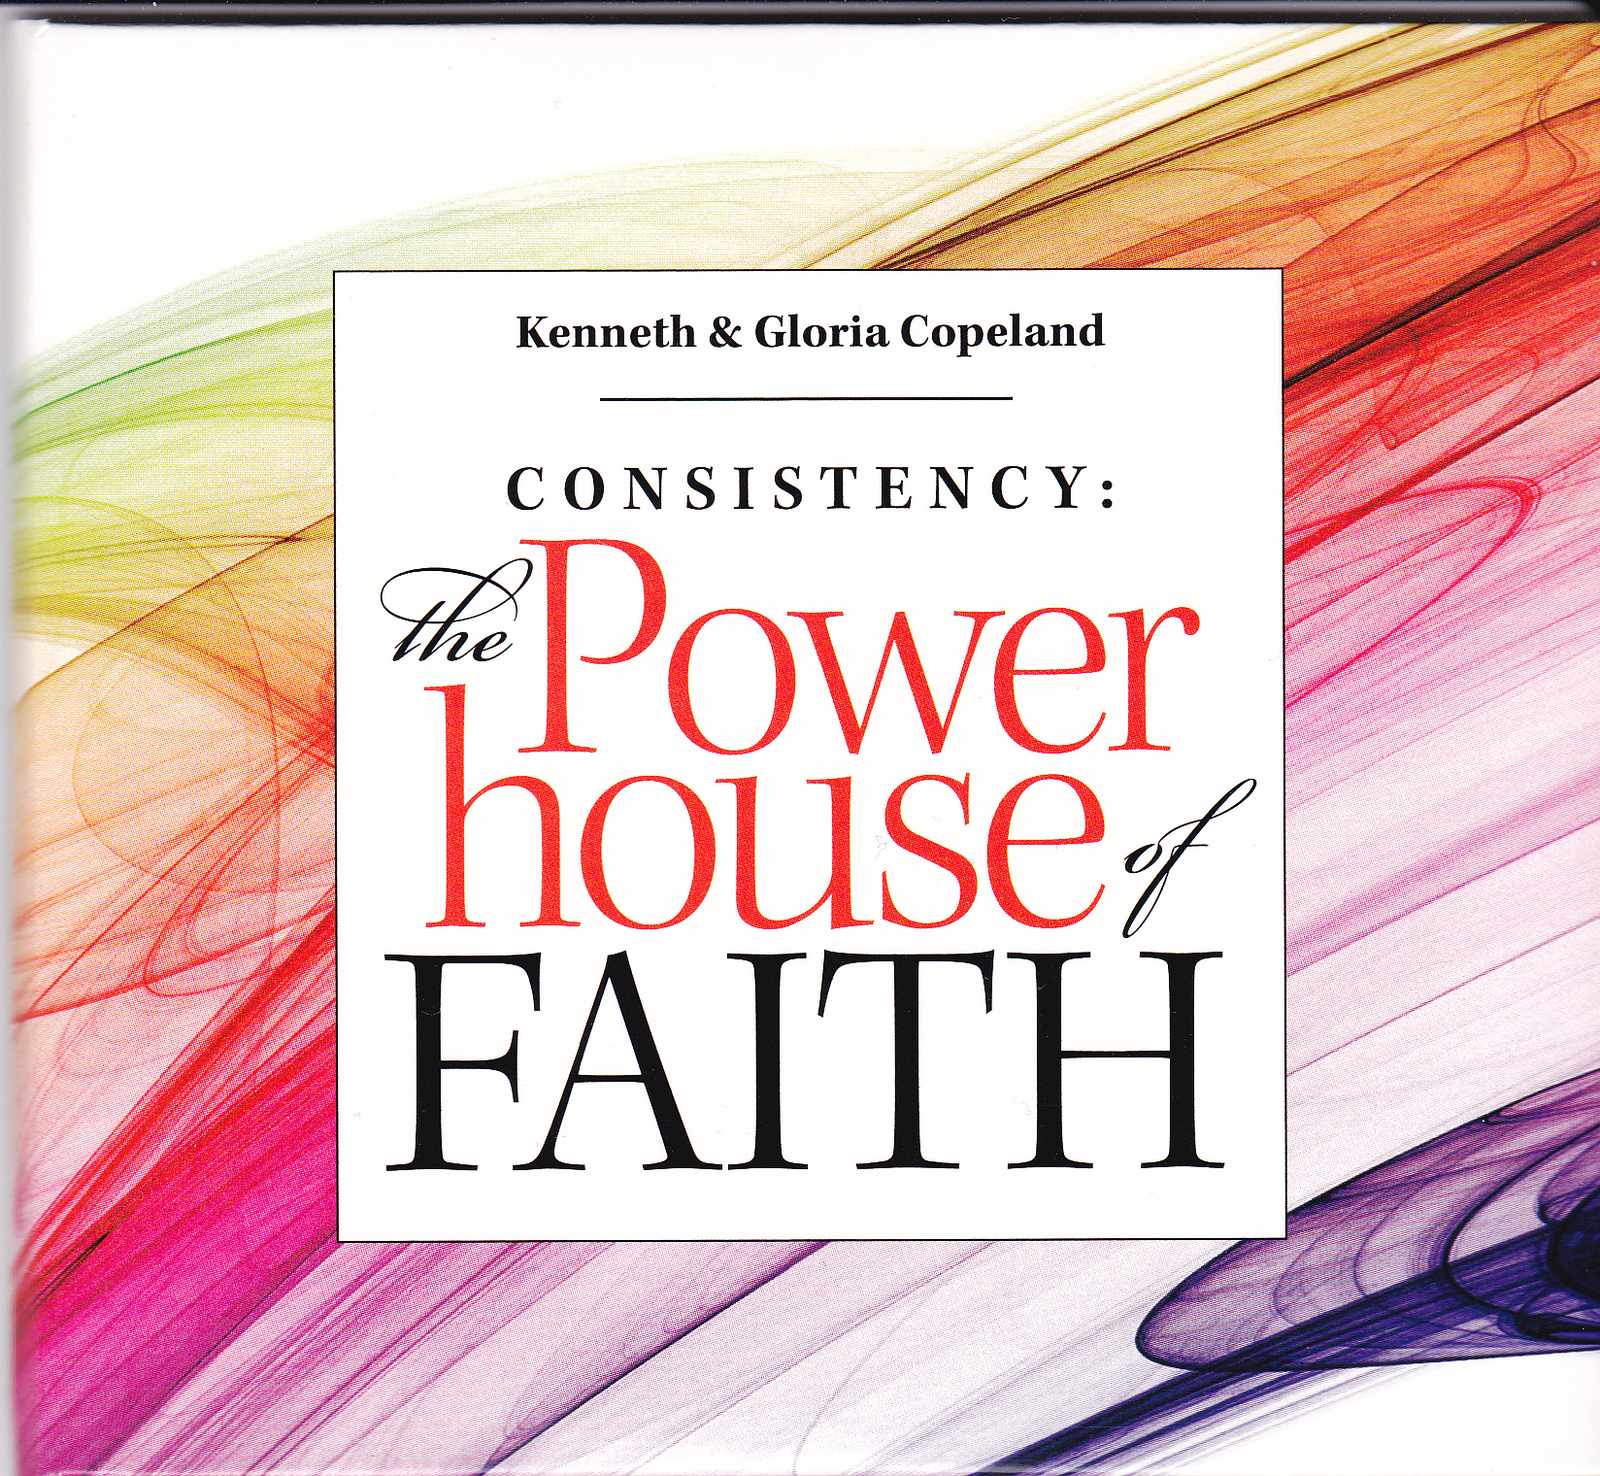 power of faith Turn on the power of faith faith is power in observing the precaution of avoiding fantasies while striving to more fully apprehend reality, you will find faith becomes a very powerful means for fulfillment.